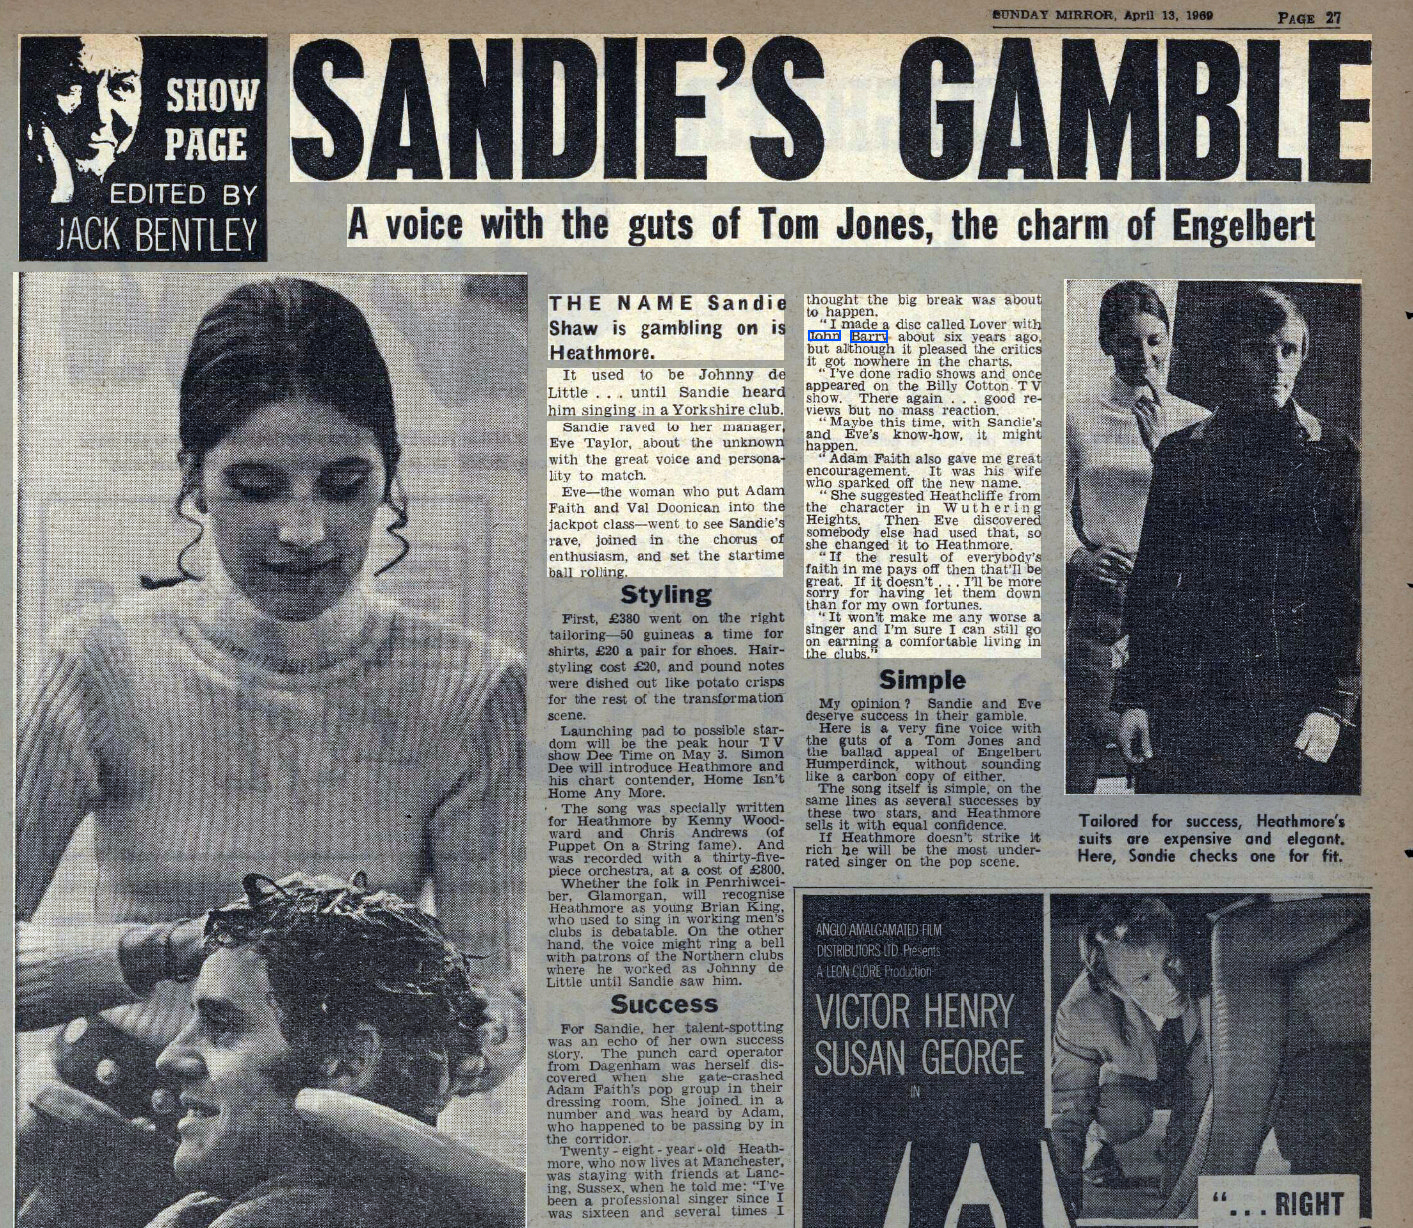 Screenshot 2020 06 14 San 1 Le's 1 Sunday Mirror Sunday 13 April 1969 British Newspaper Archive